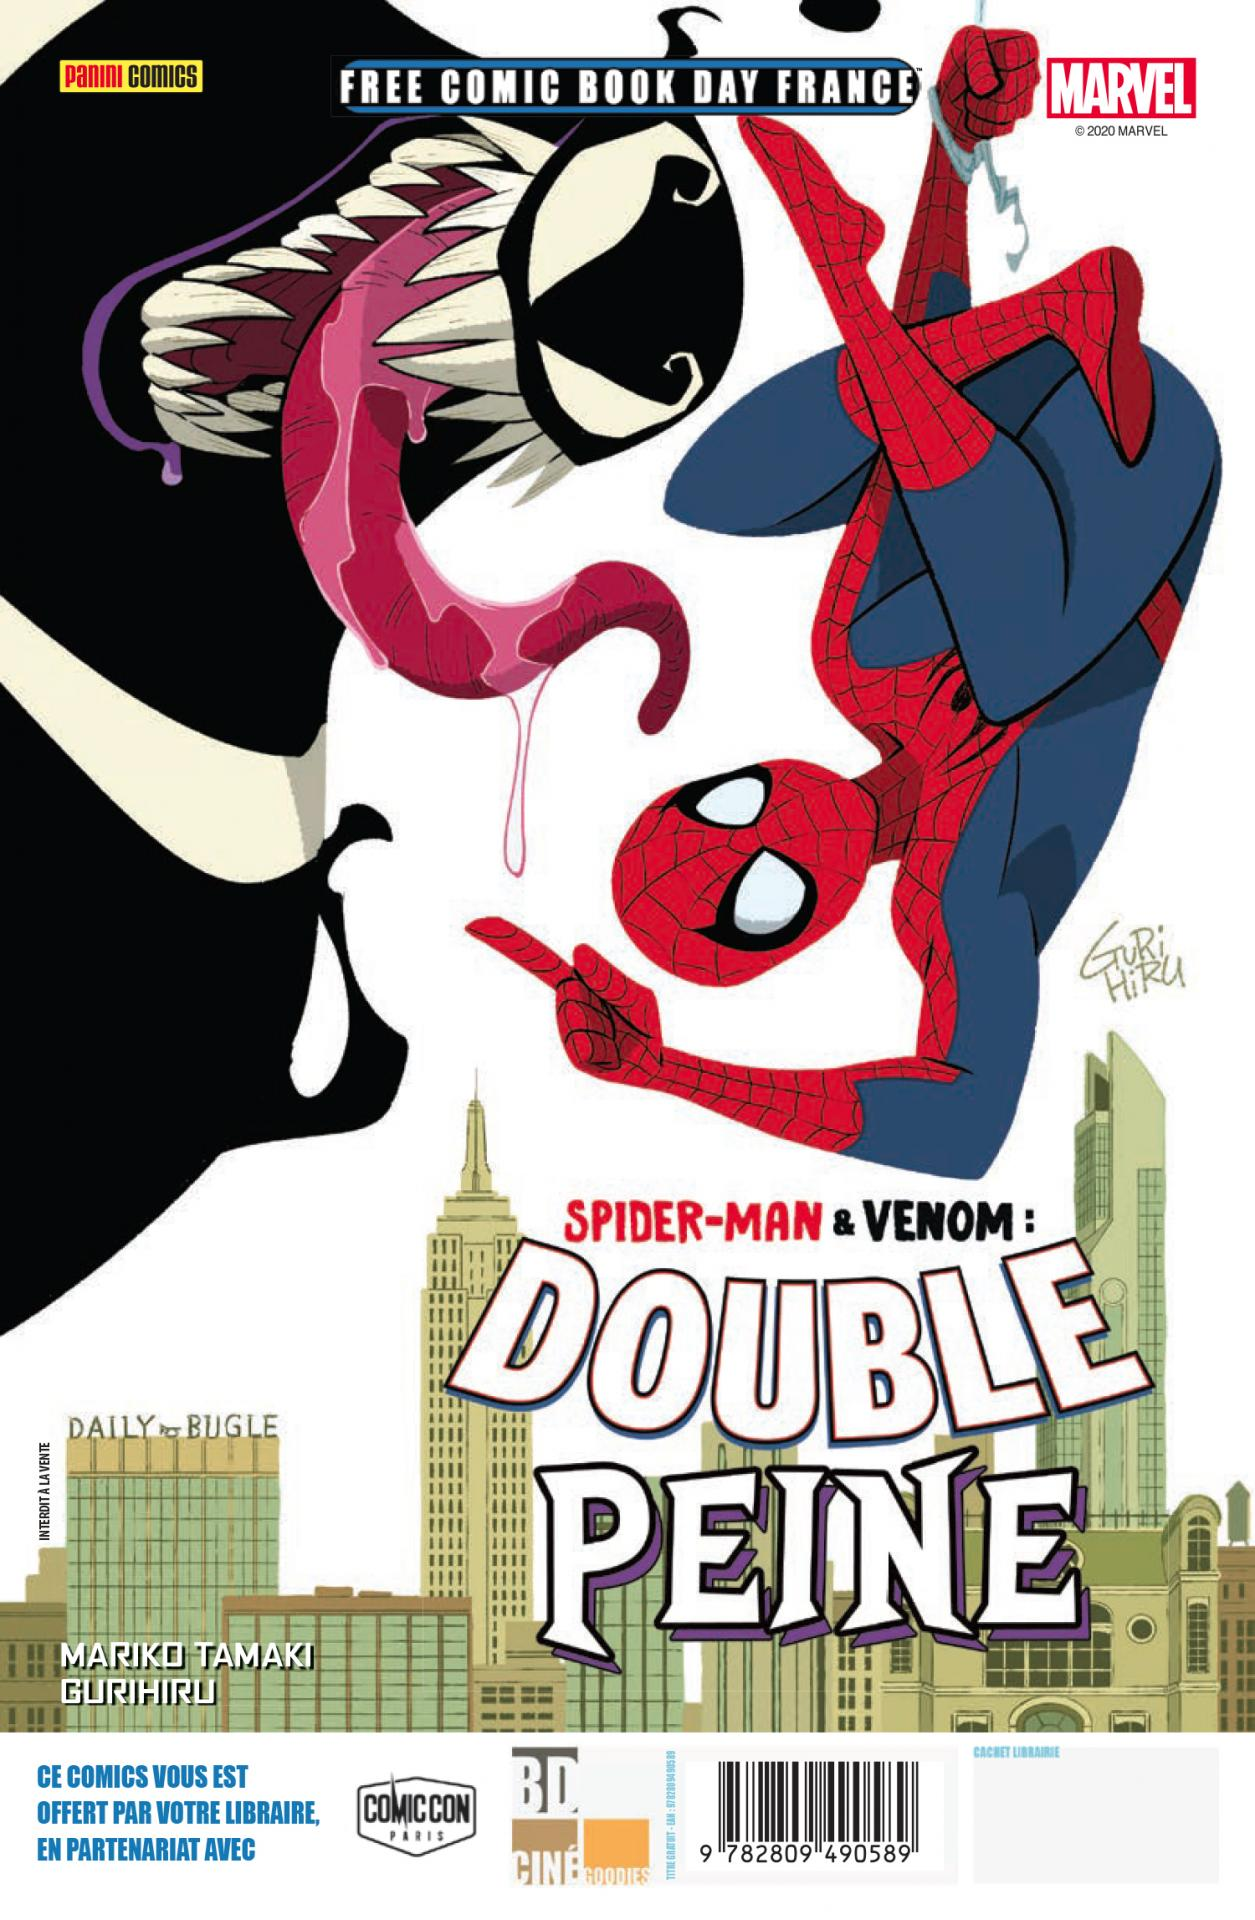 Panini comics fcbd france 2020 spider man venom double trouble